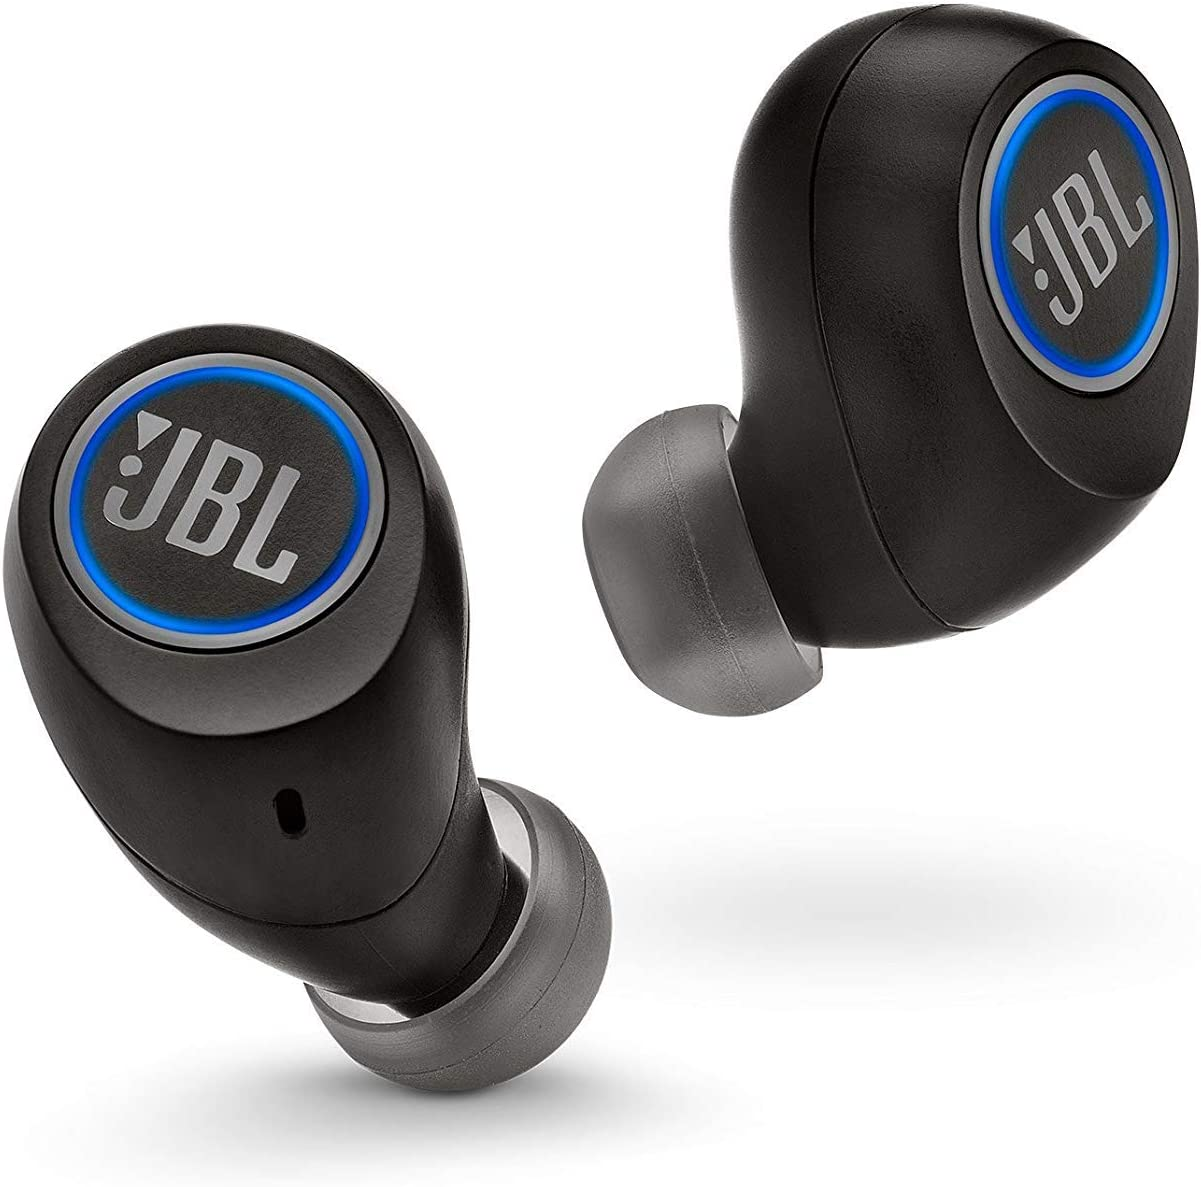 JBL Free Truly Wireless In-Ear Headphones (Black) (Renewed)